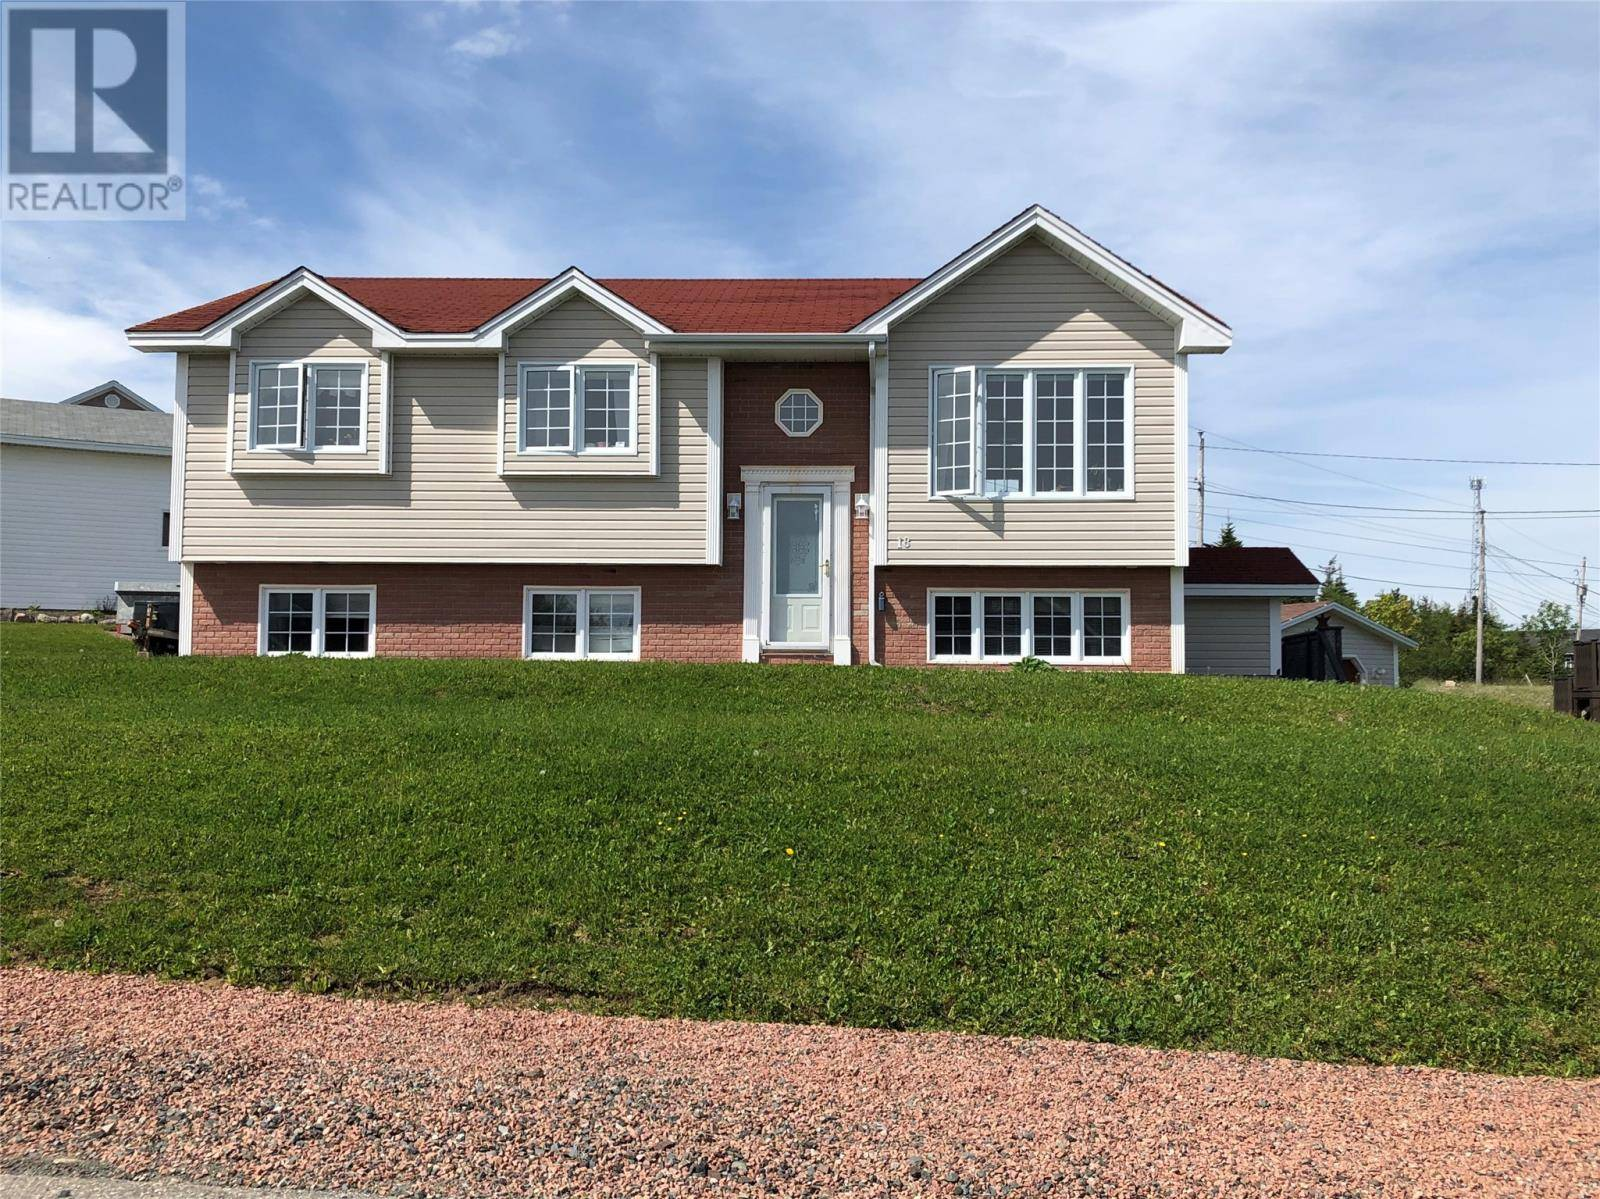 House for sale at 18 Haystack Ave Arnold's Cove Newfoundland - MLS: 1210107